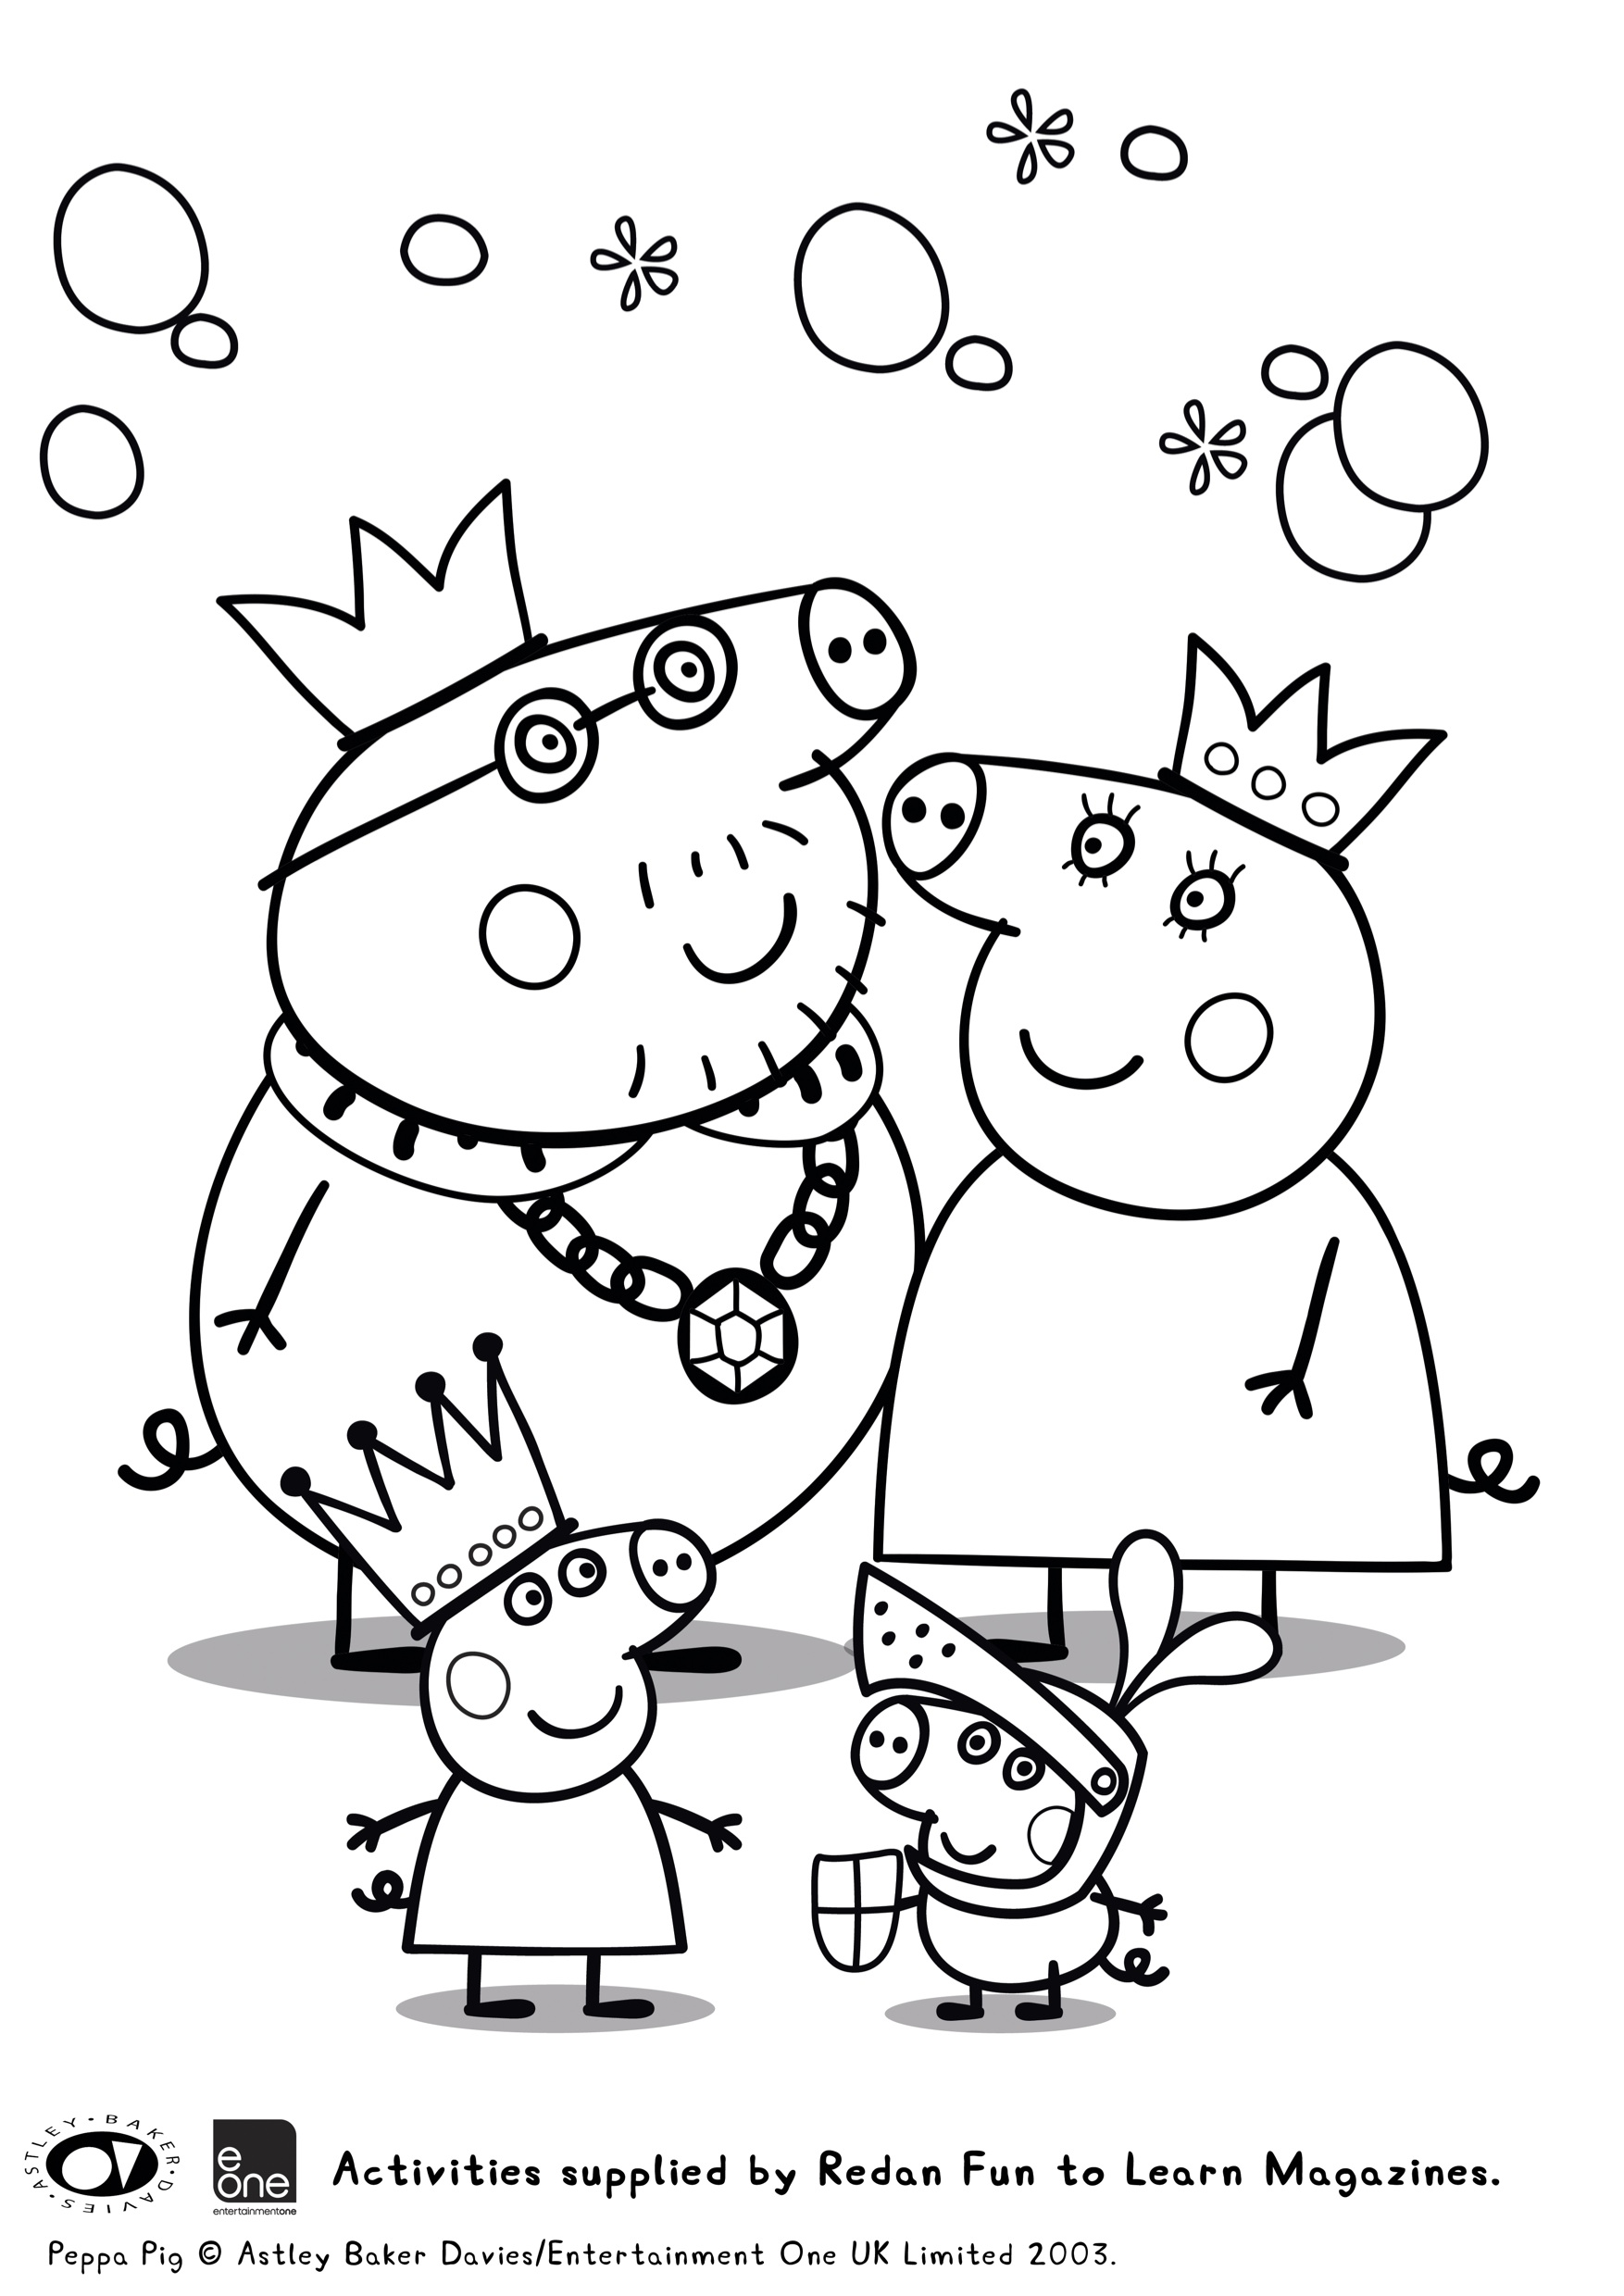 Peppa Pig Colouring In Printables Plus Huge Peppa Pig Prize Pack Giveaway